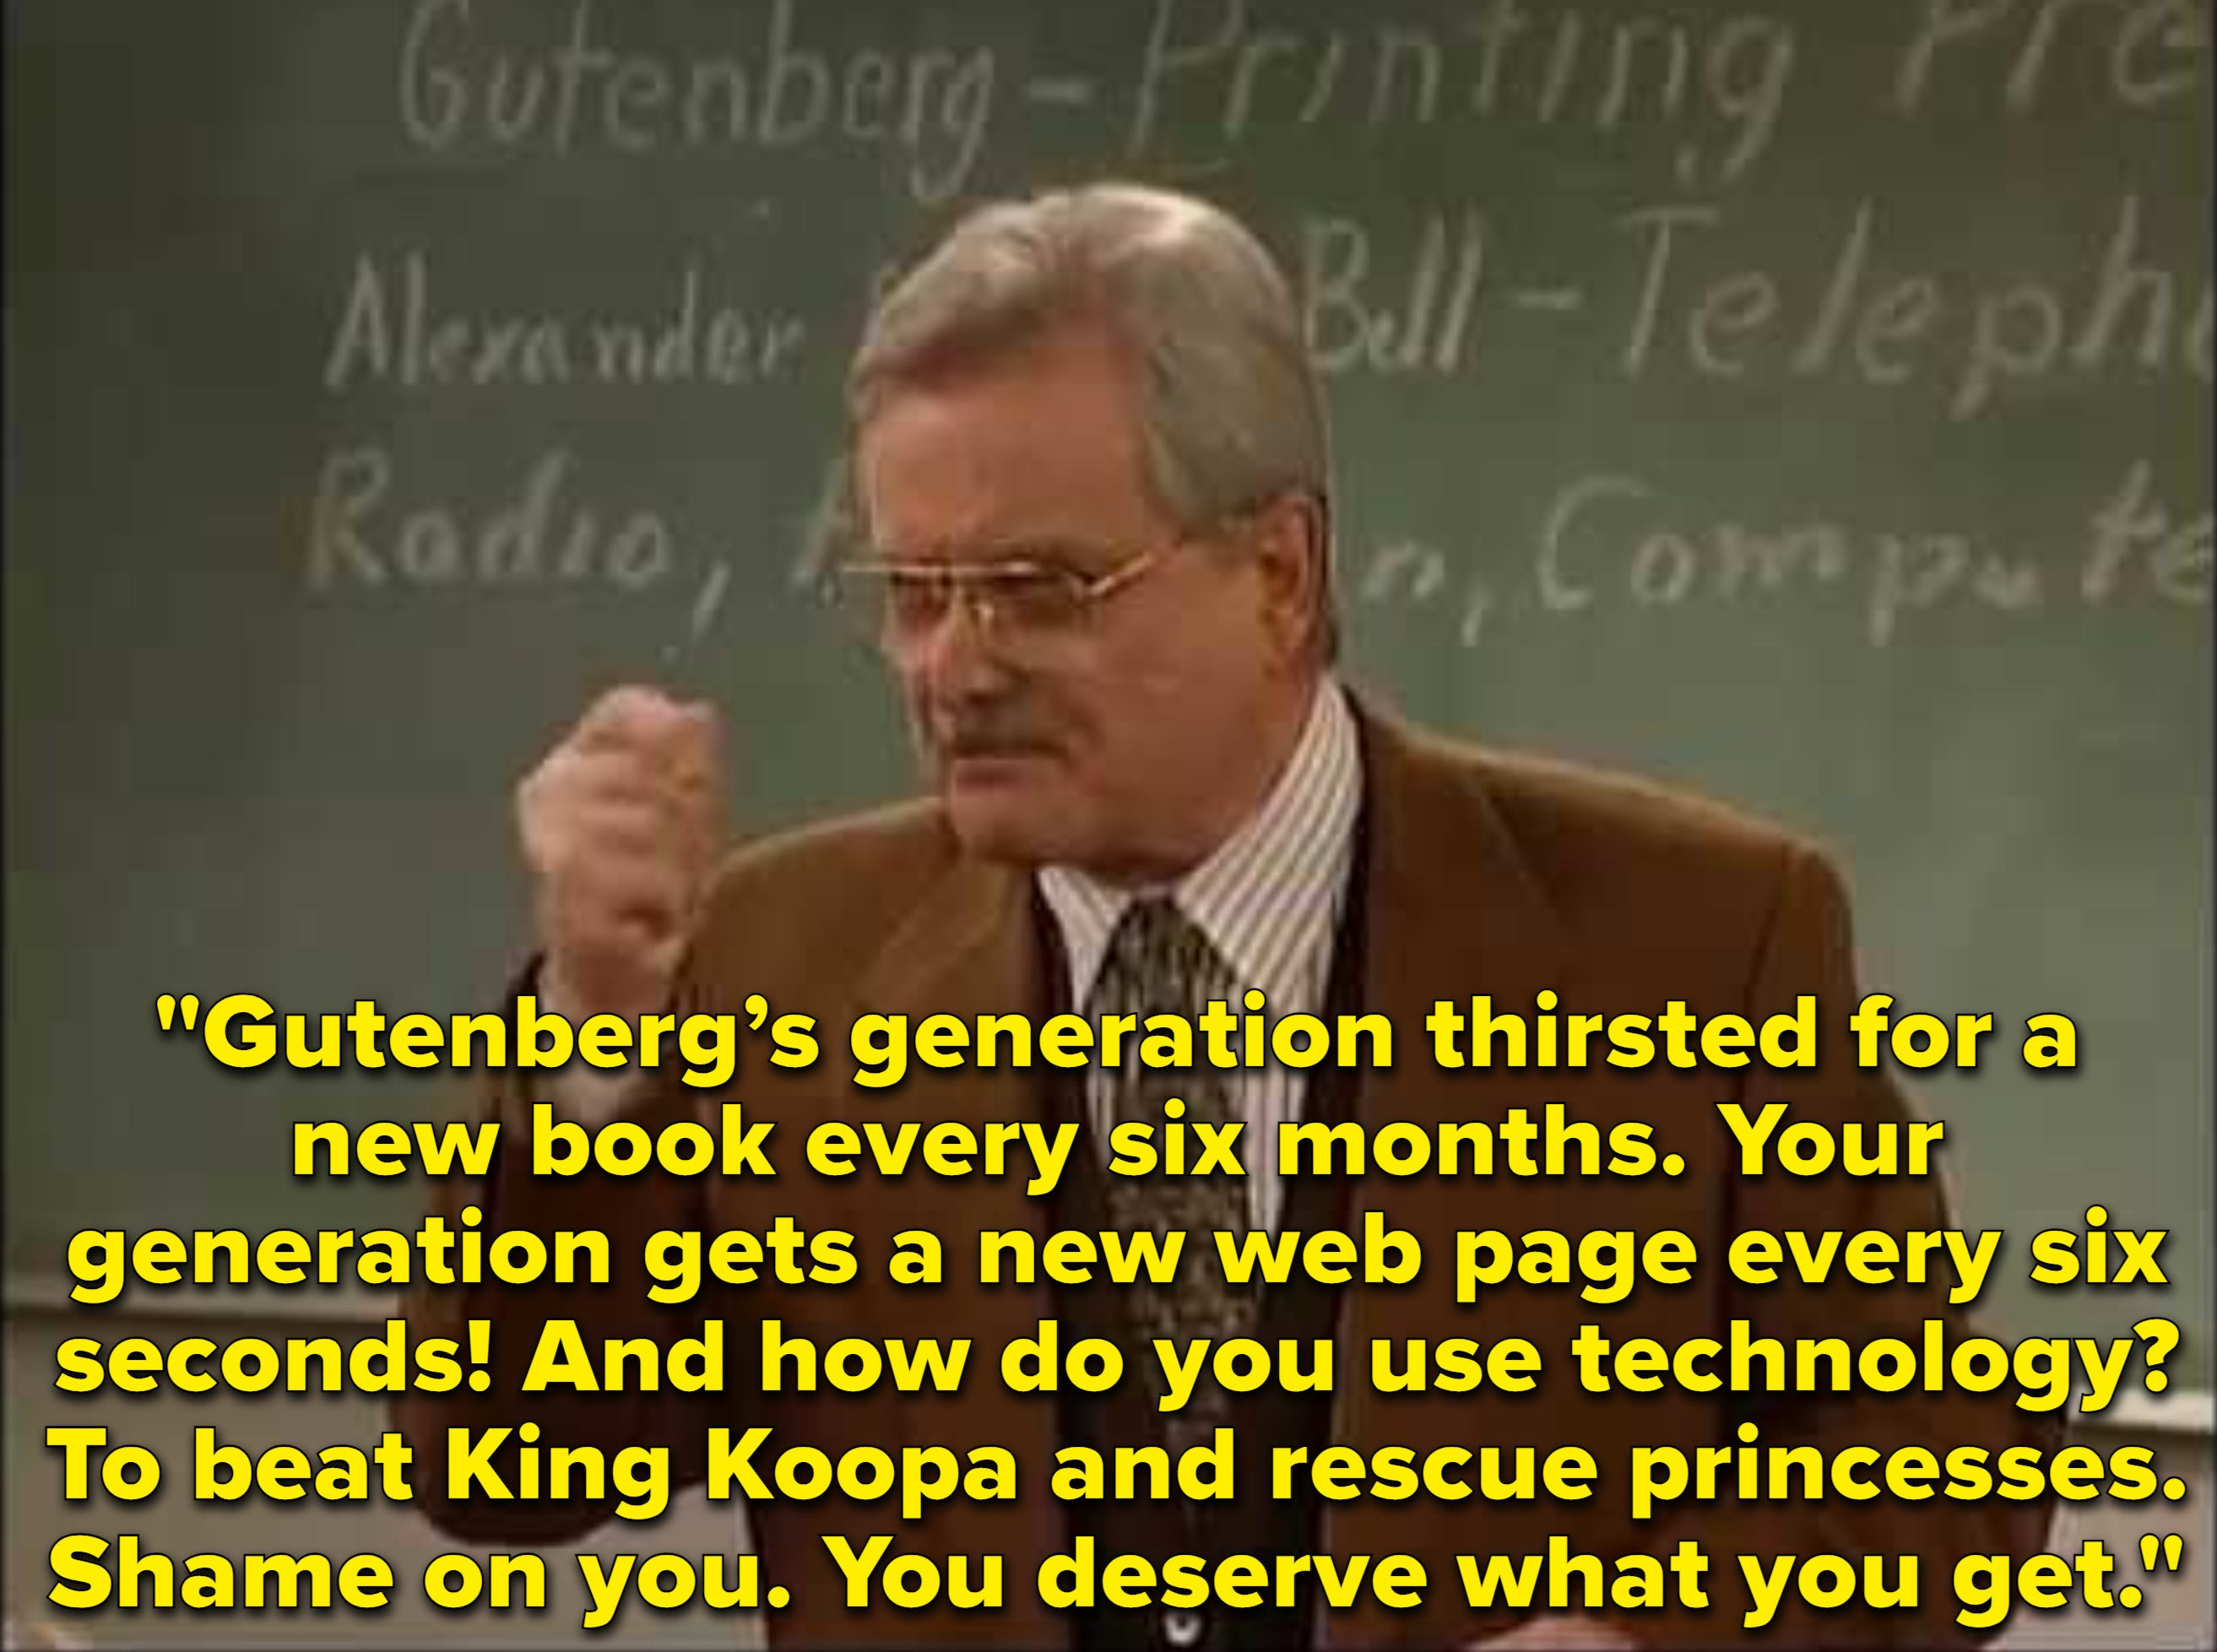 Mr. Feeny lectures about how in Gutenberg's generation they waited six months for a book, whereas today web page's refresh every six seconds